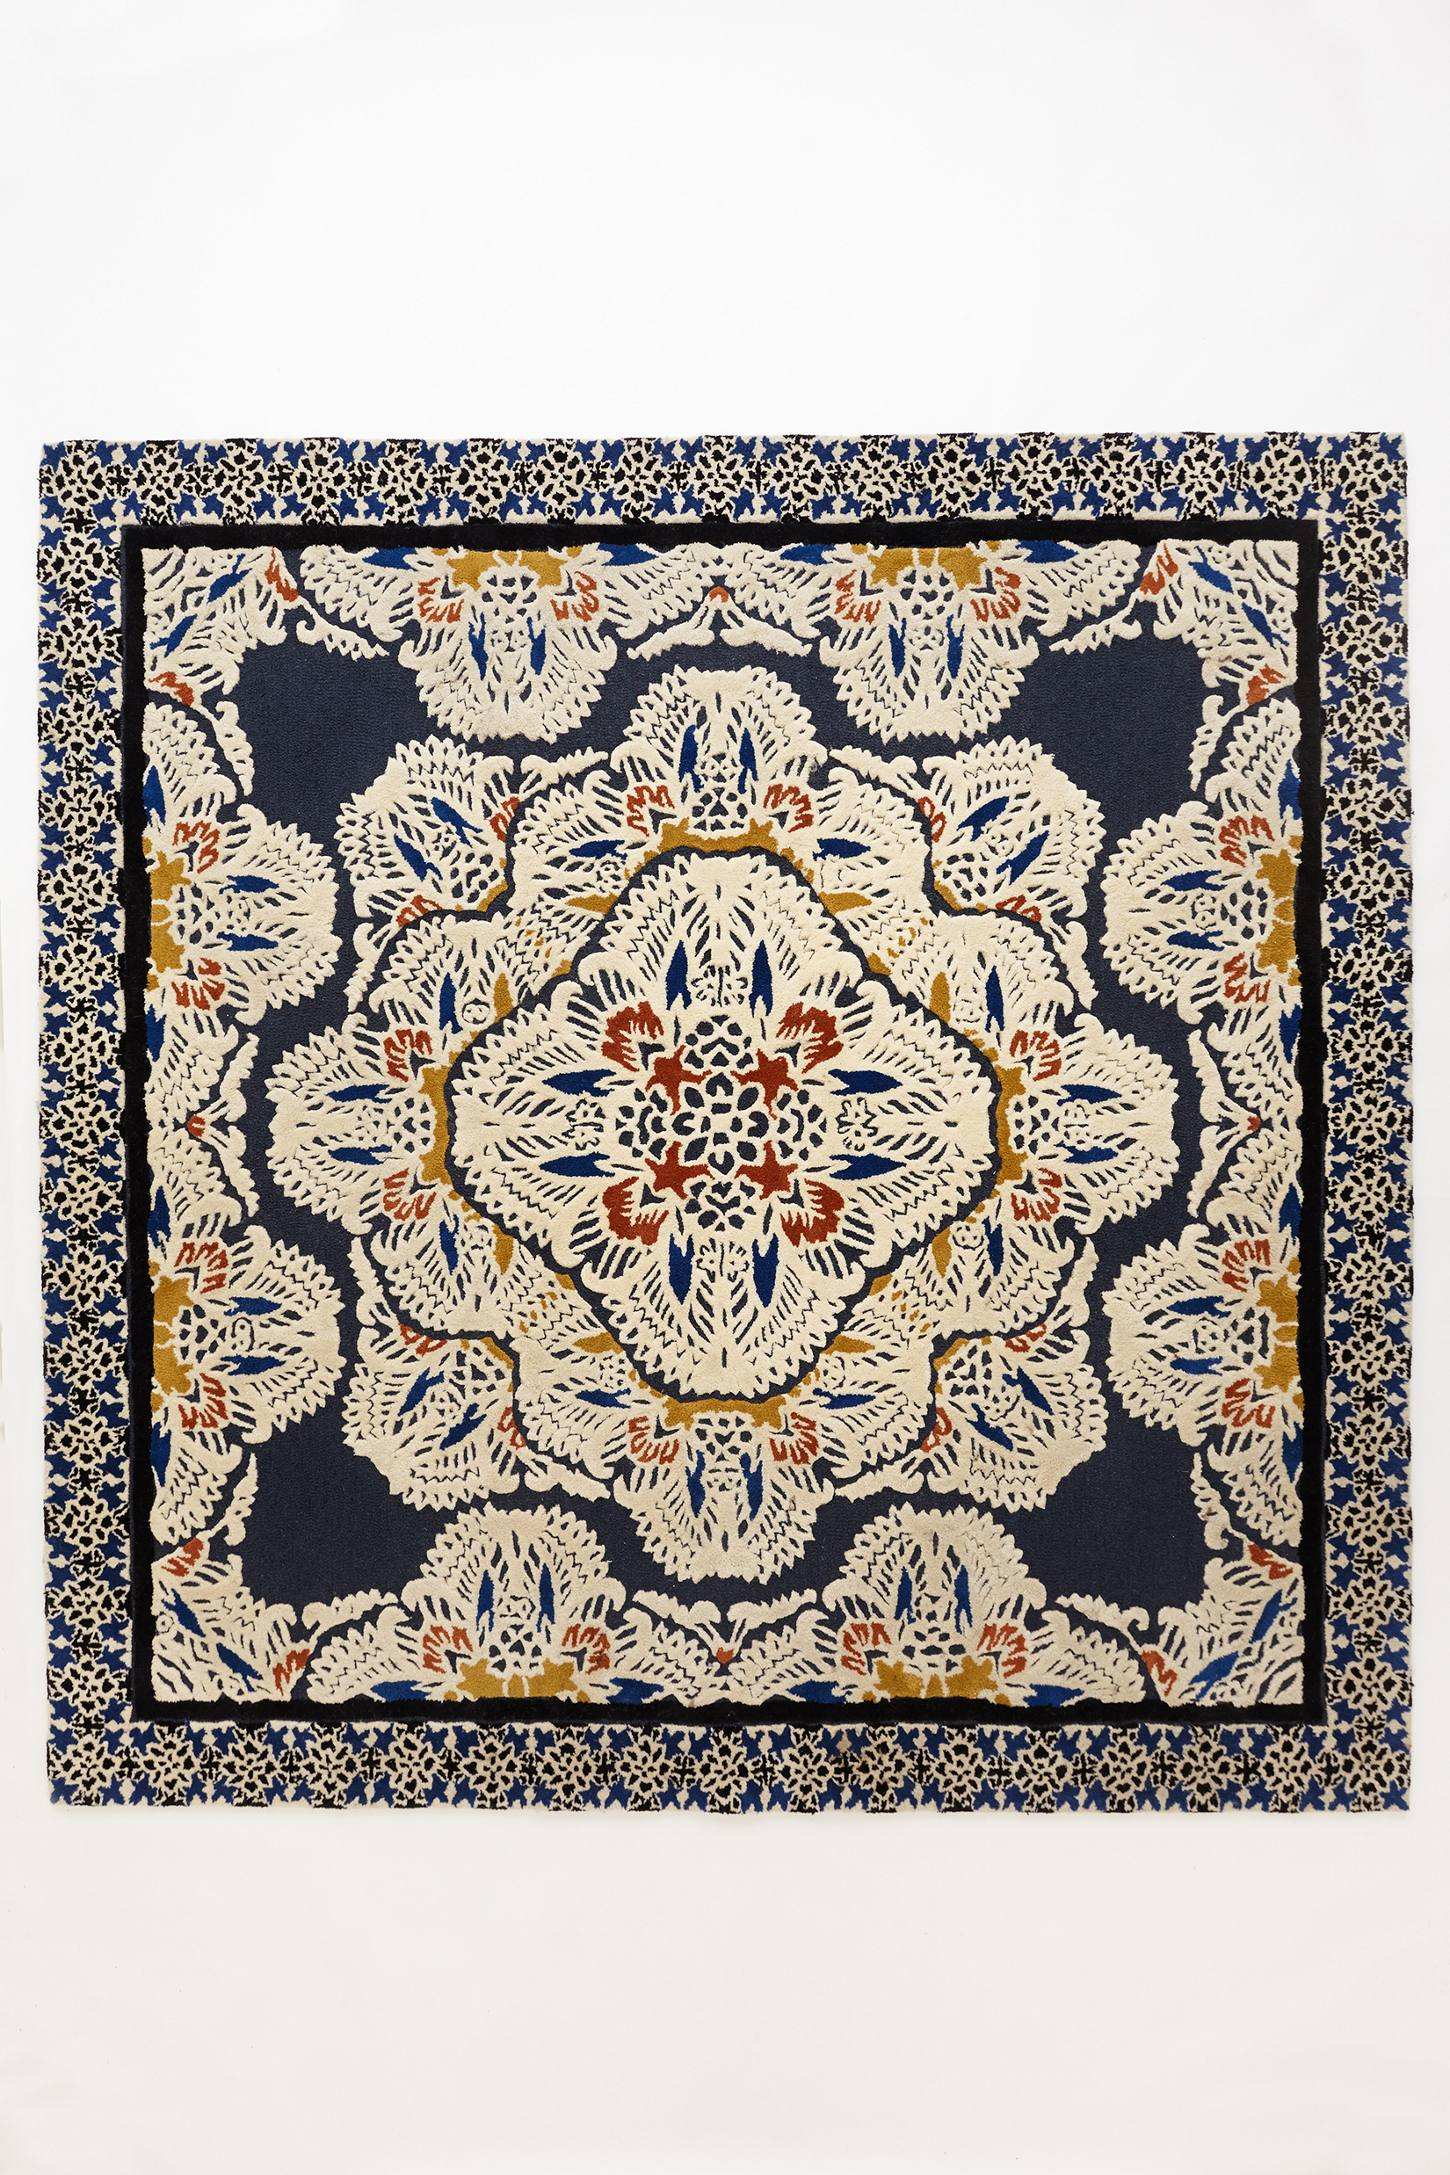 Slide View: 3: Tufted Regalia Rug